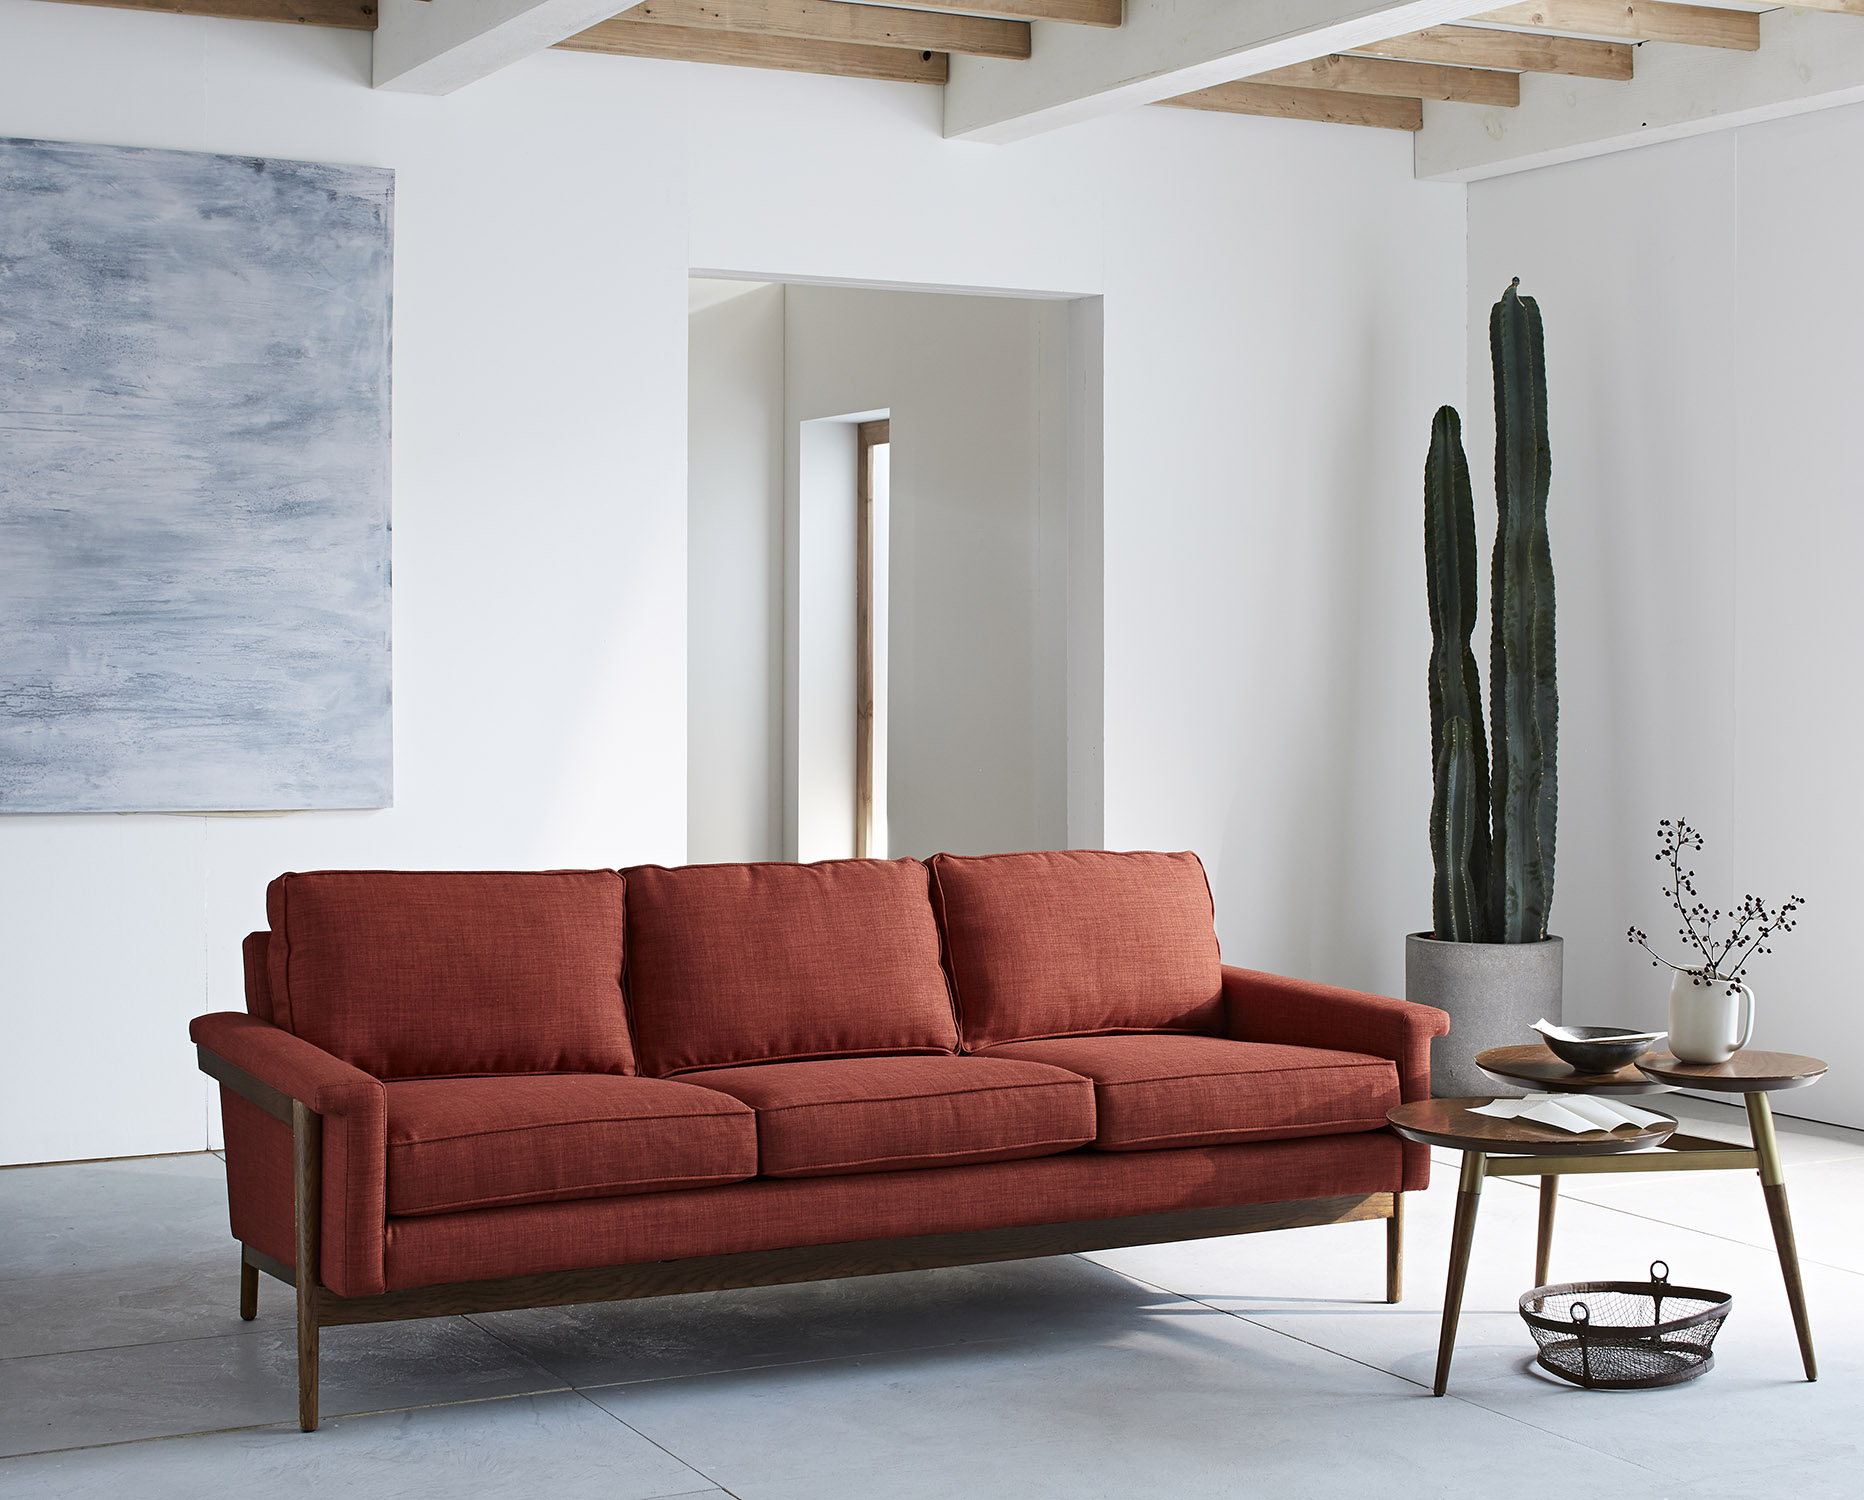 ecom-feature-leon-sofa-cayenne-v1-hl16-037_edited